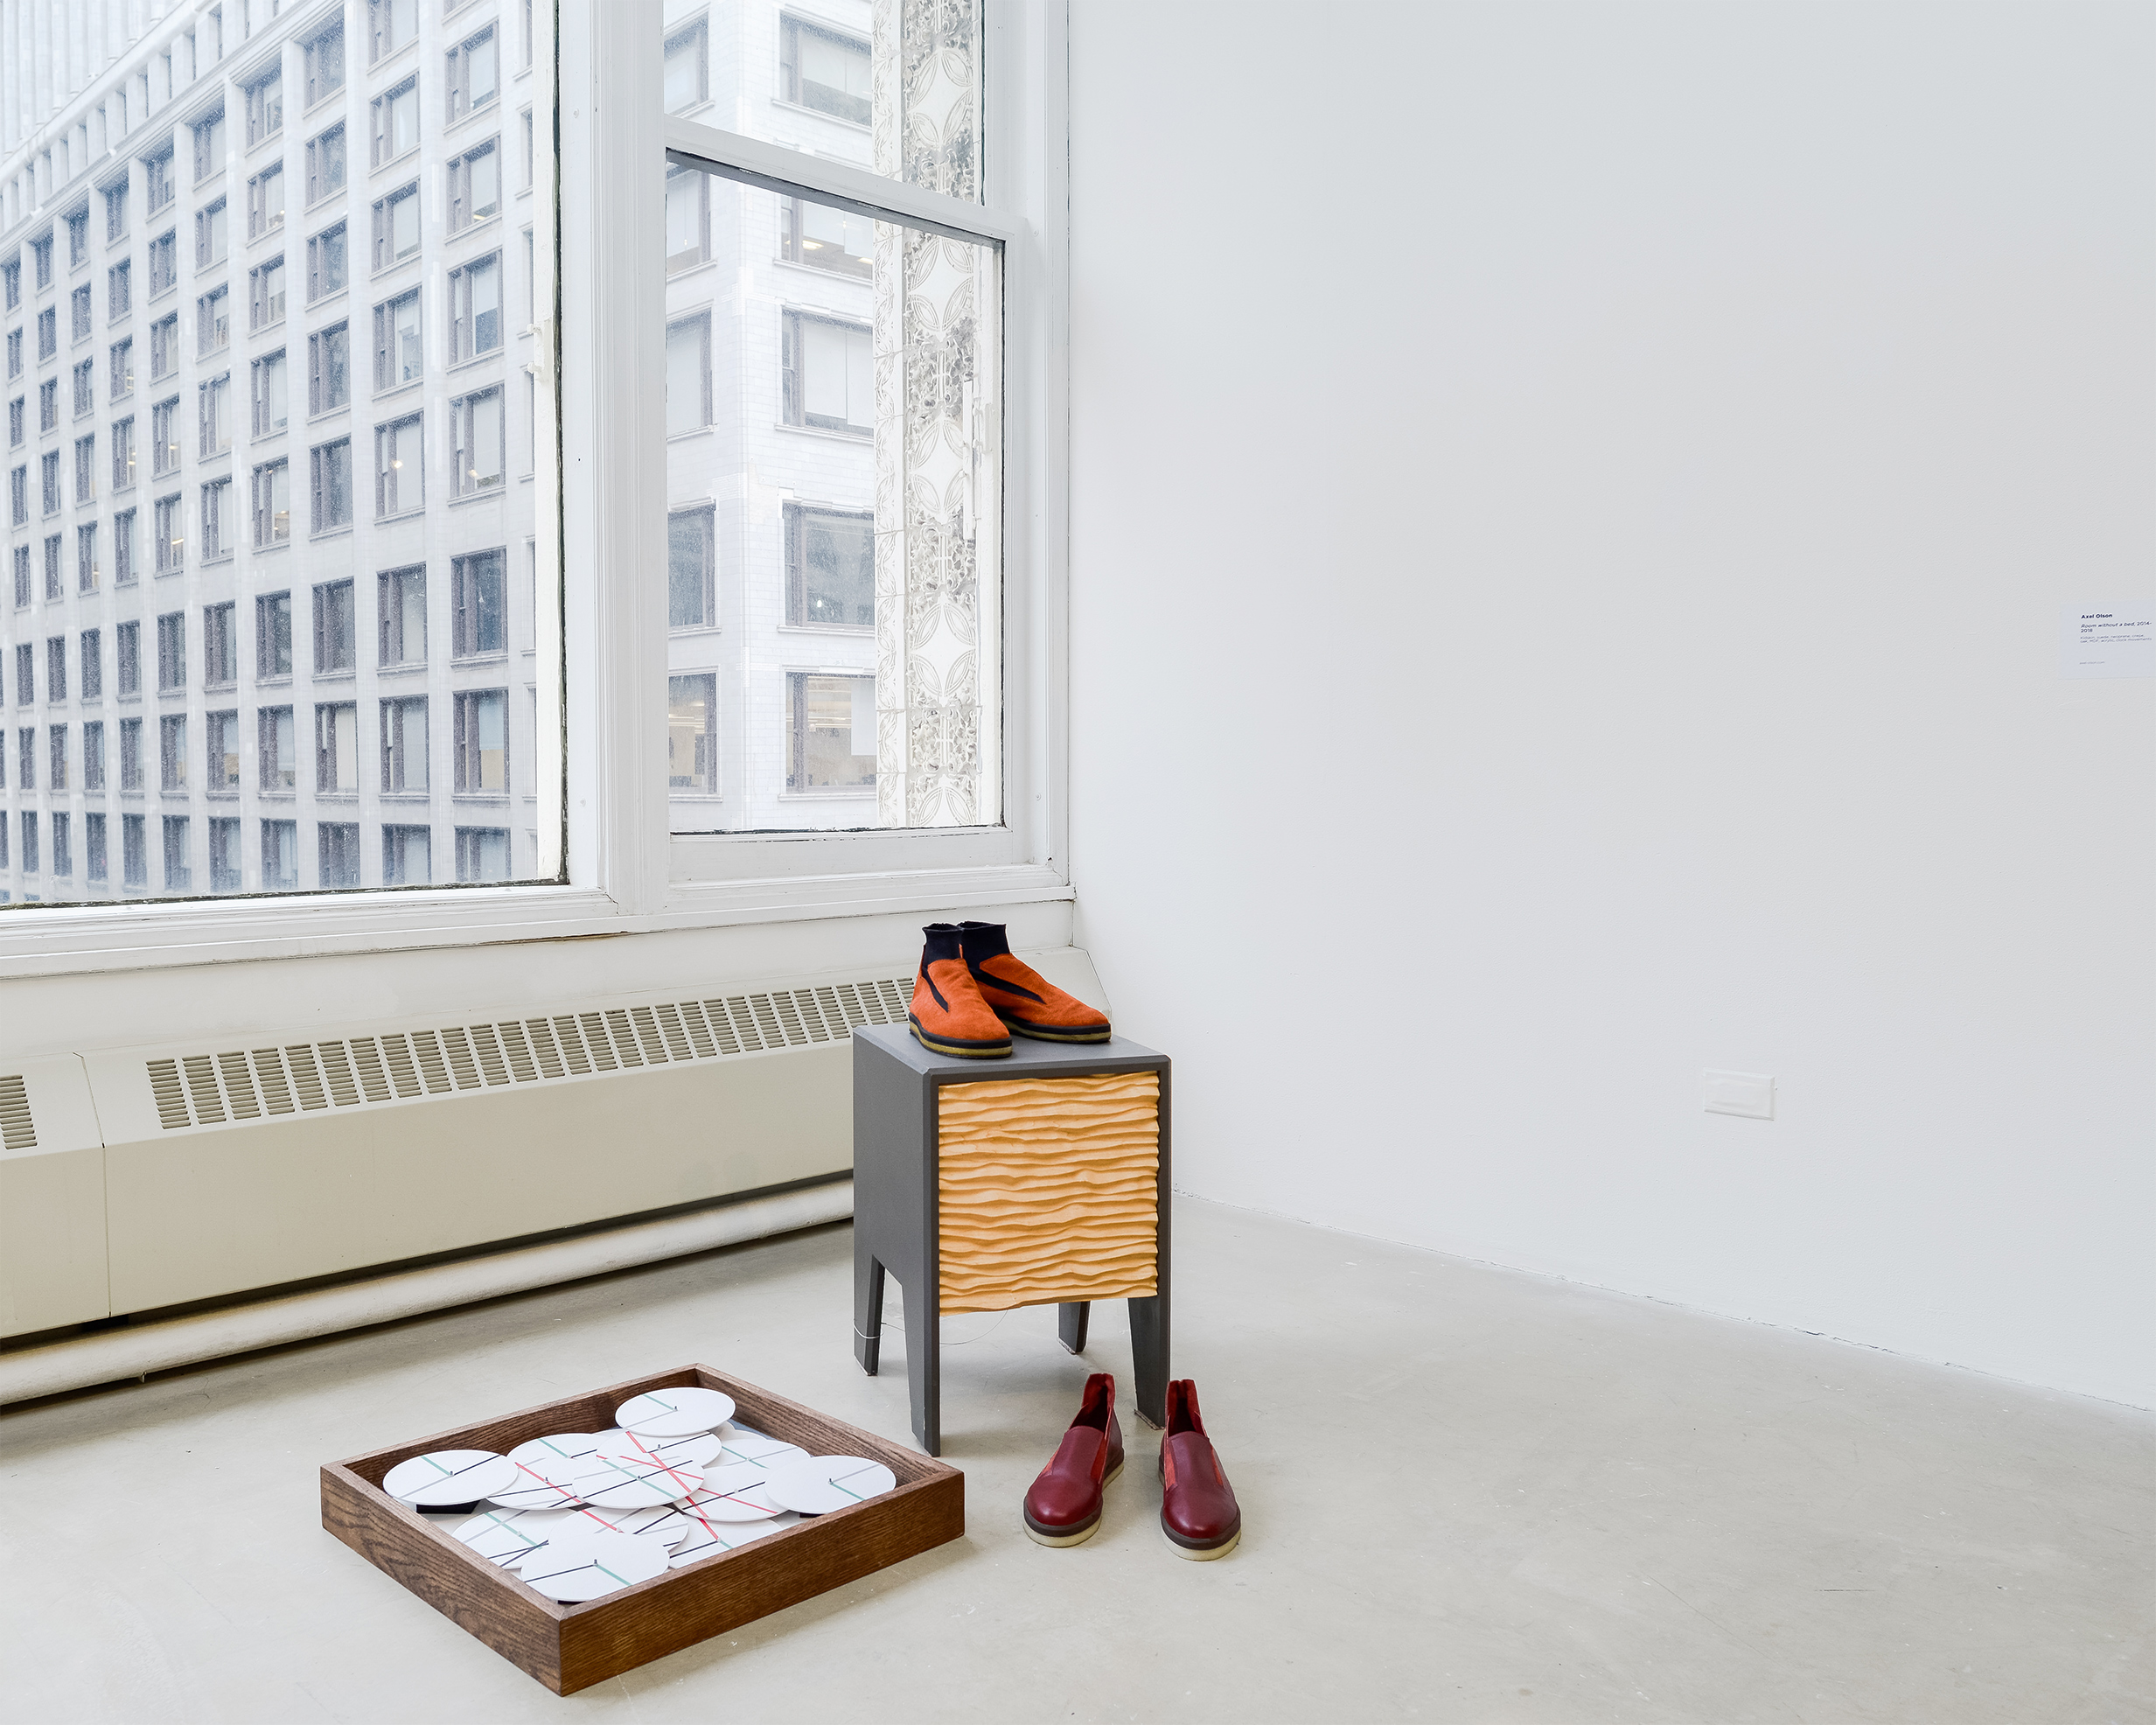 Roma Room without a Bed 2018 SAIC Sullivan Galleries